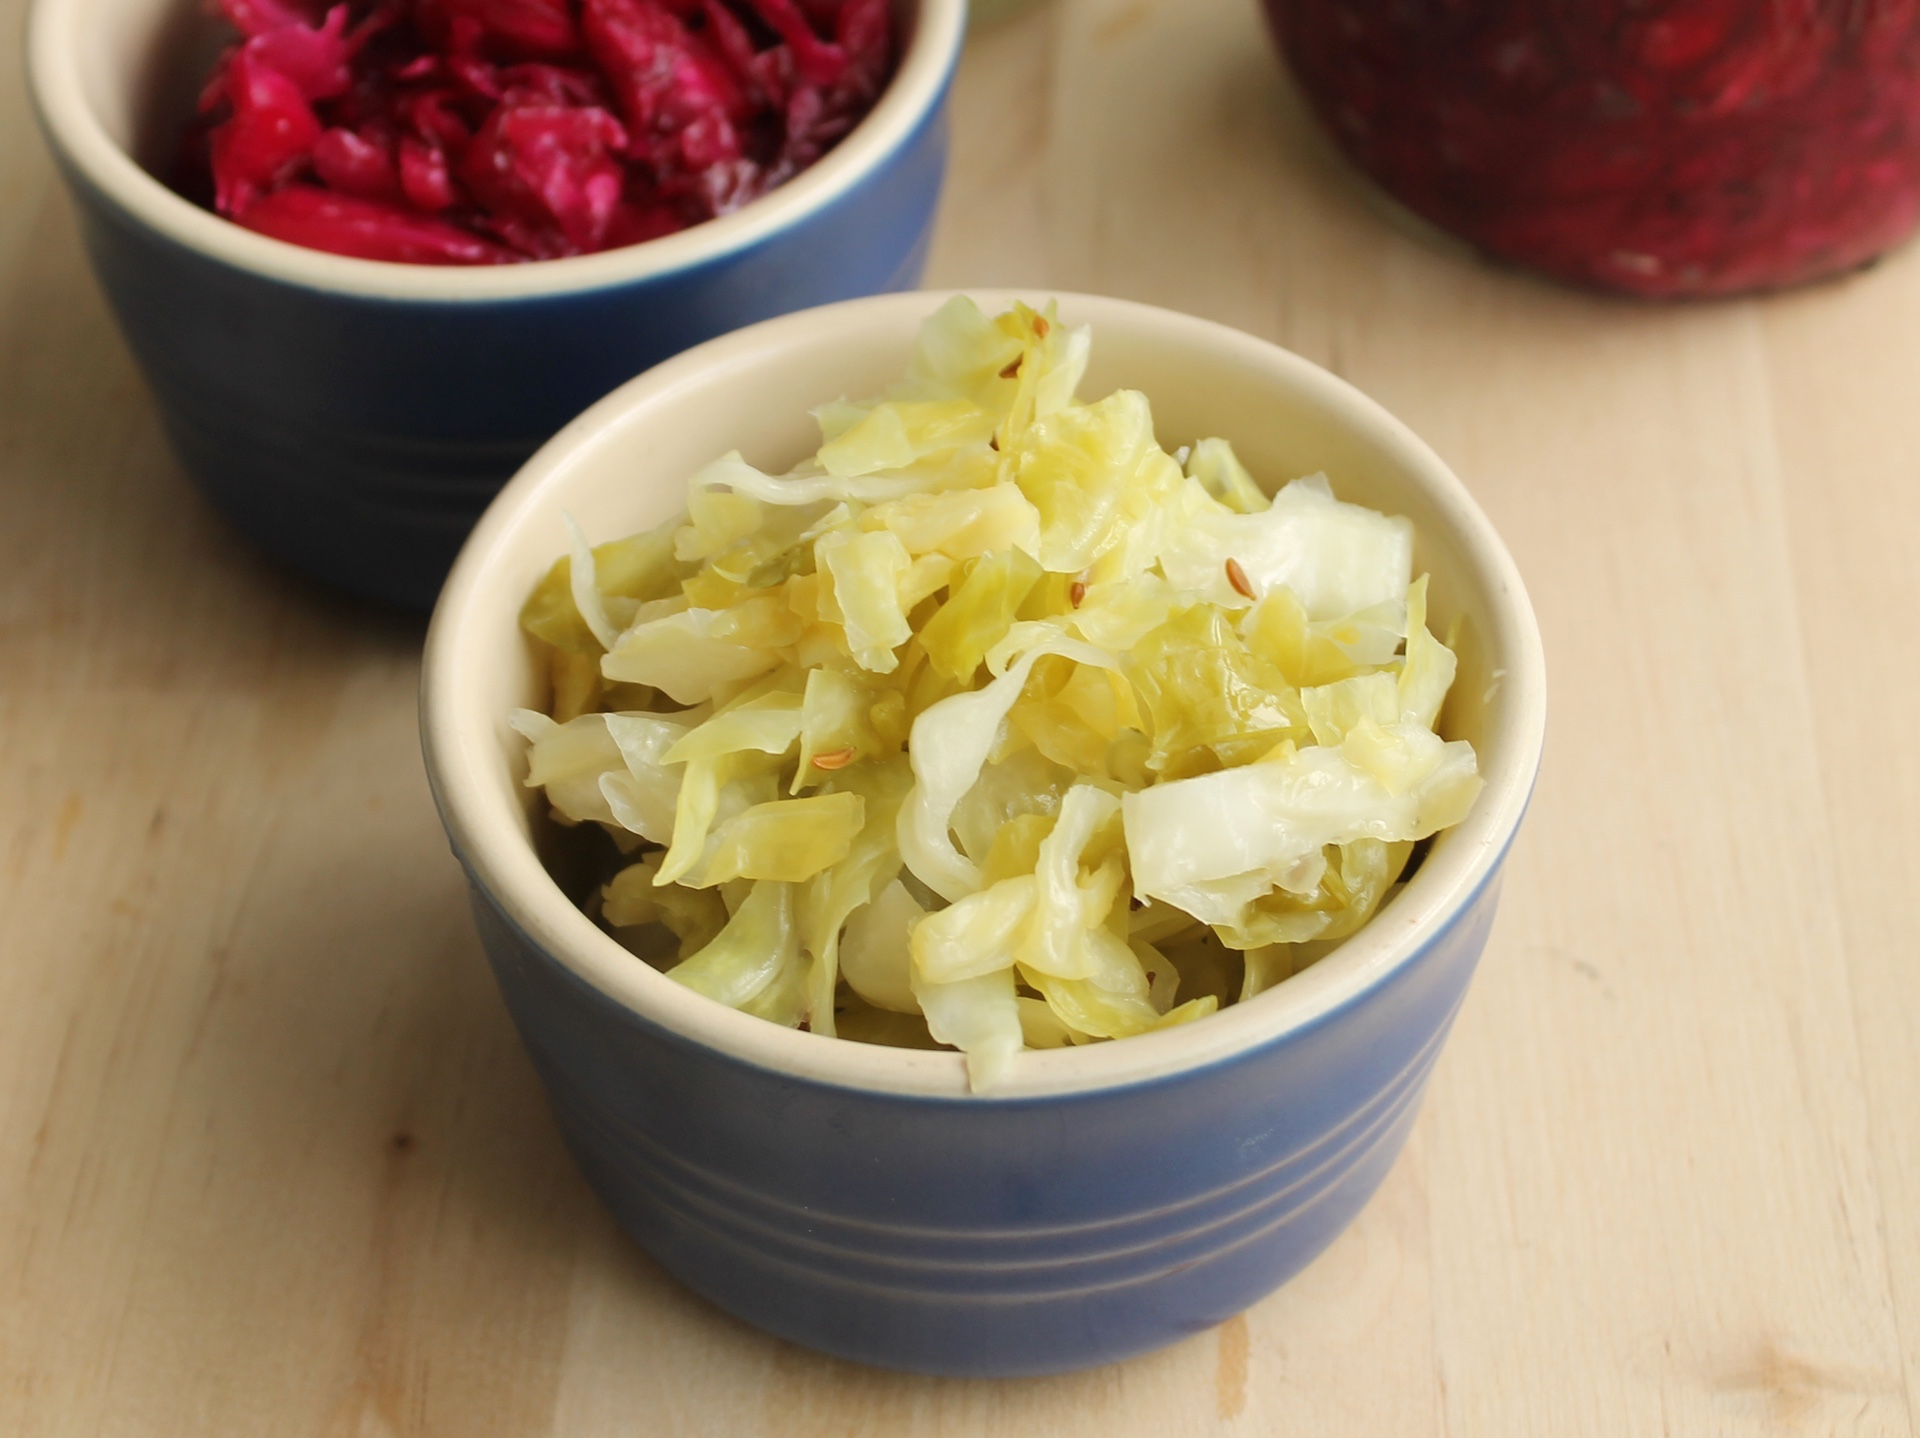 Homemade sauerkraut with caraway (front) and homemade beet and chile sauerkraut (rear).